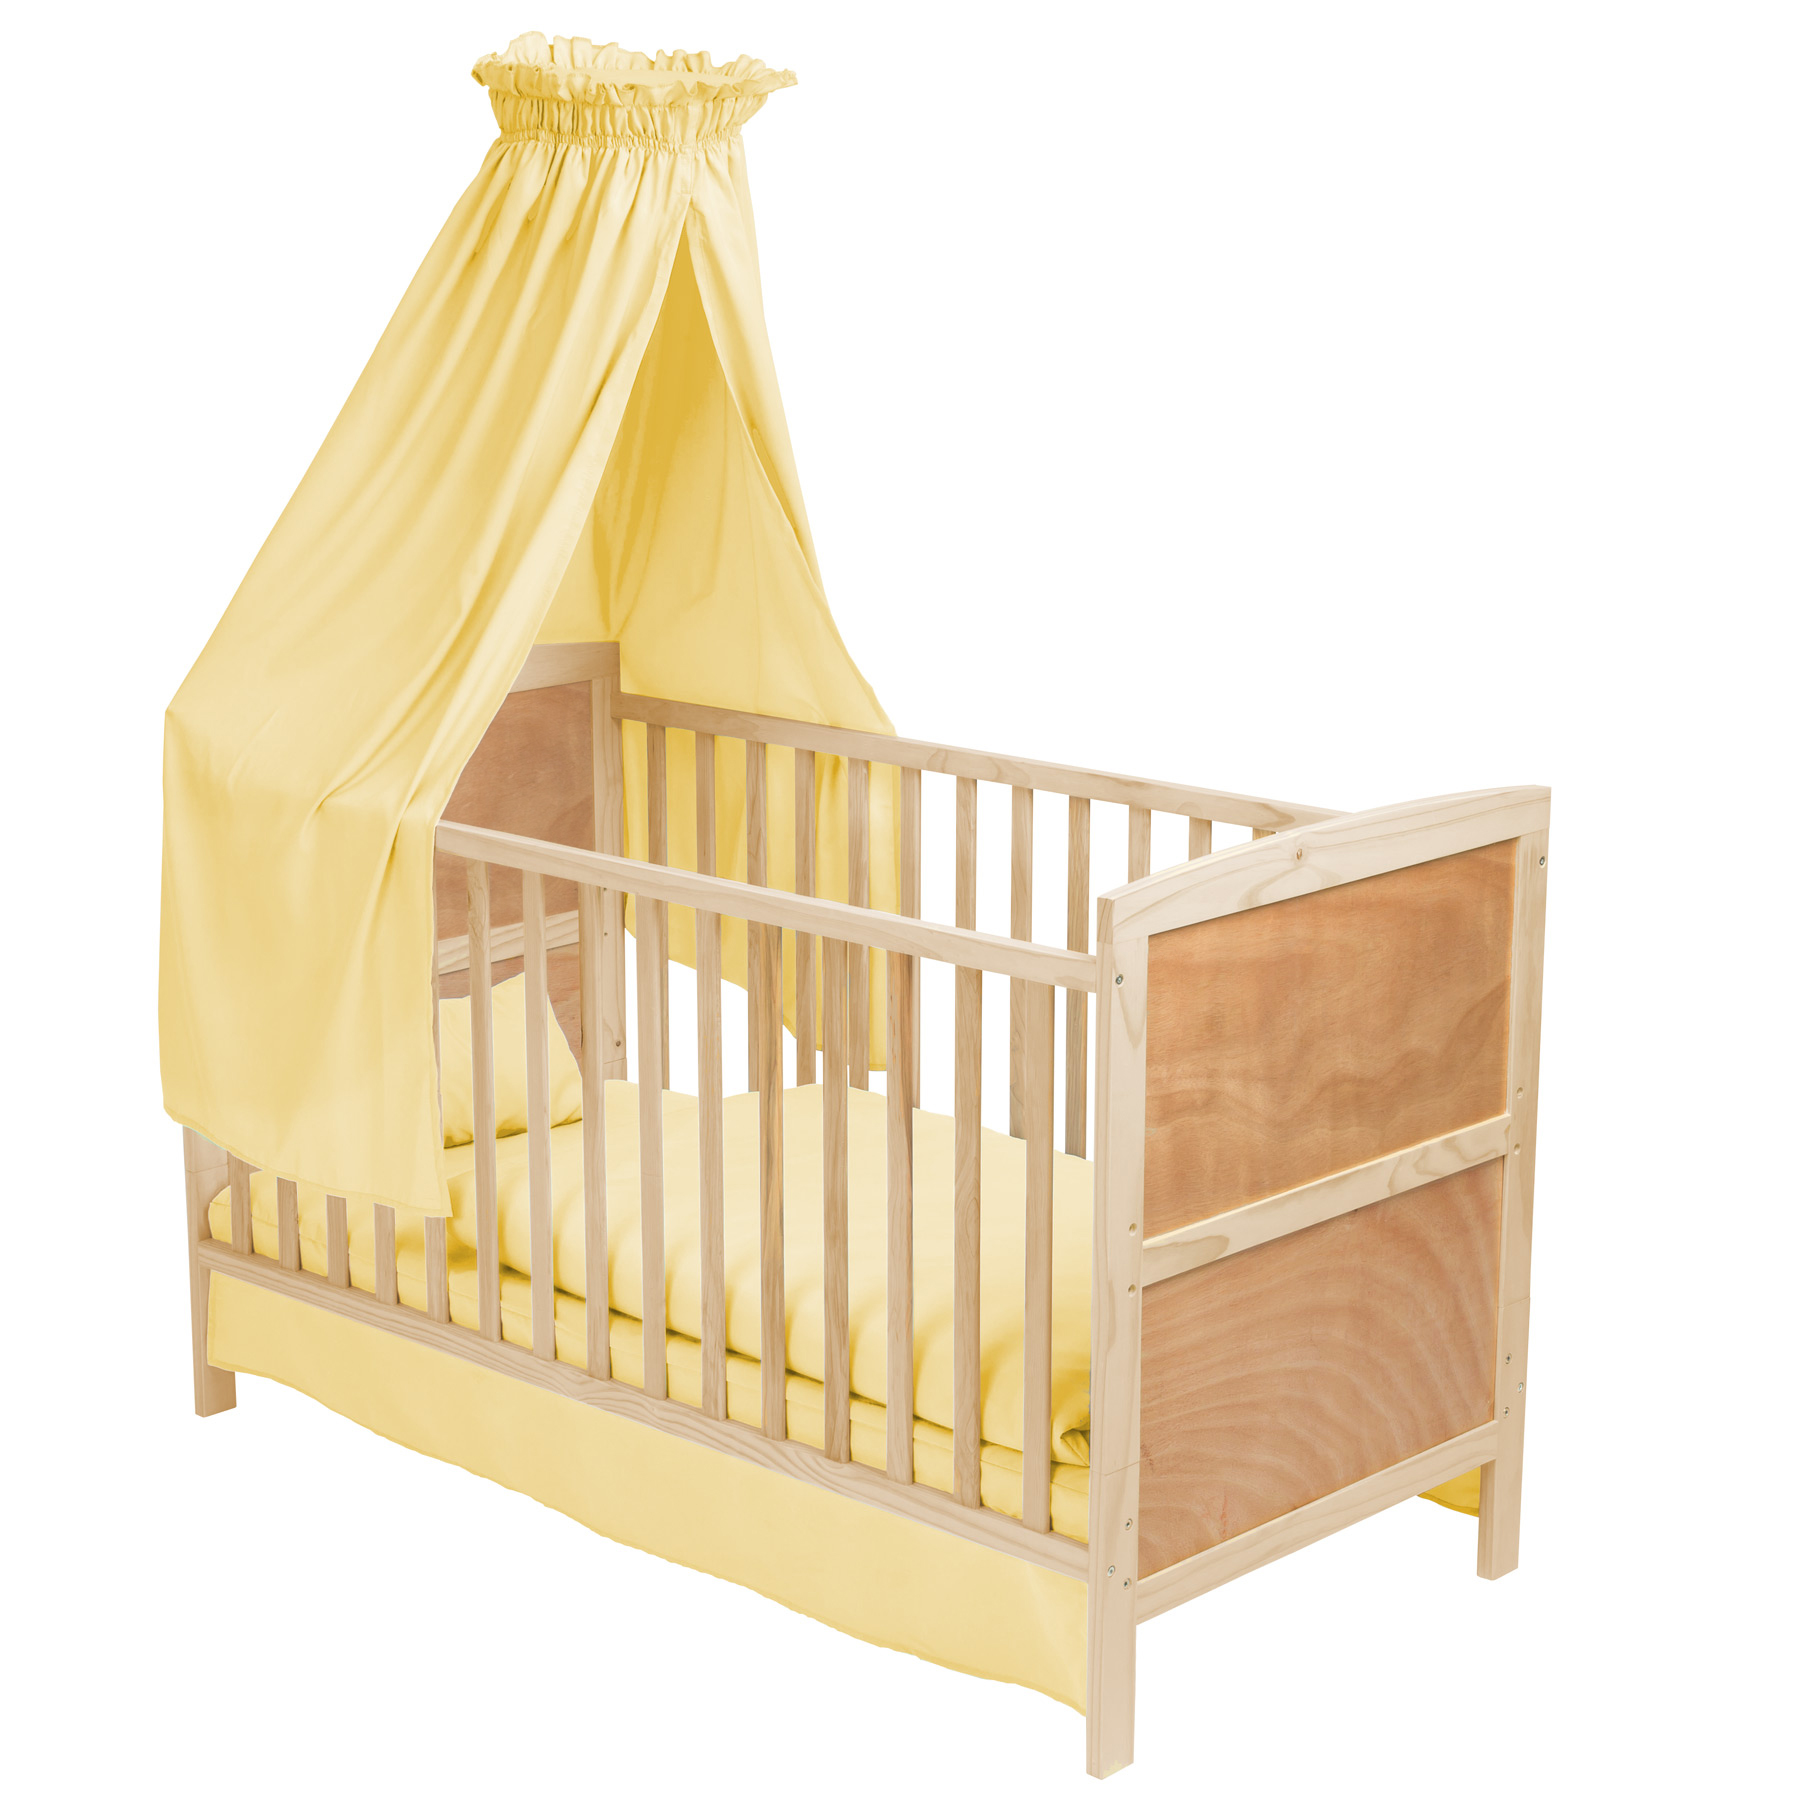 baby crib cradle cot bassinet bed wood moses basket